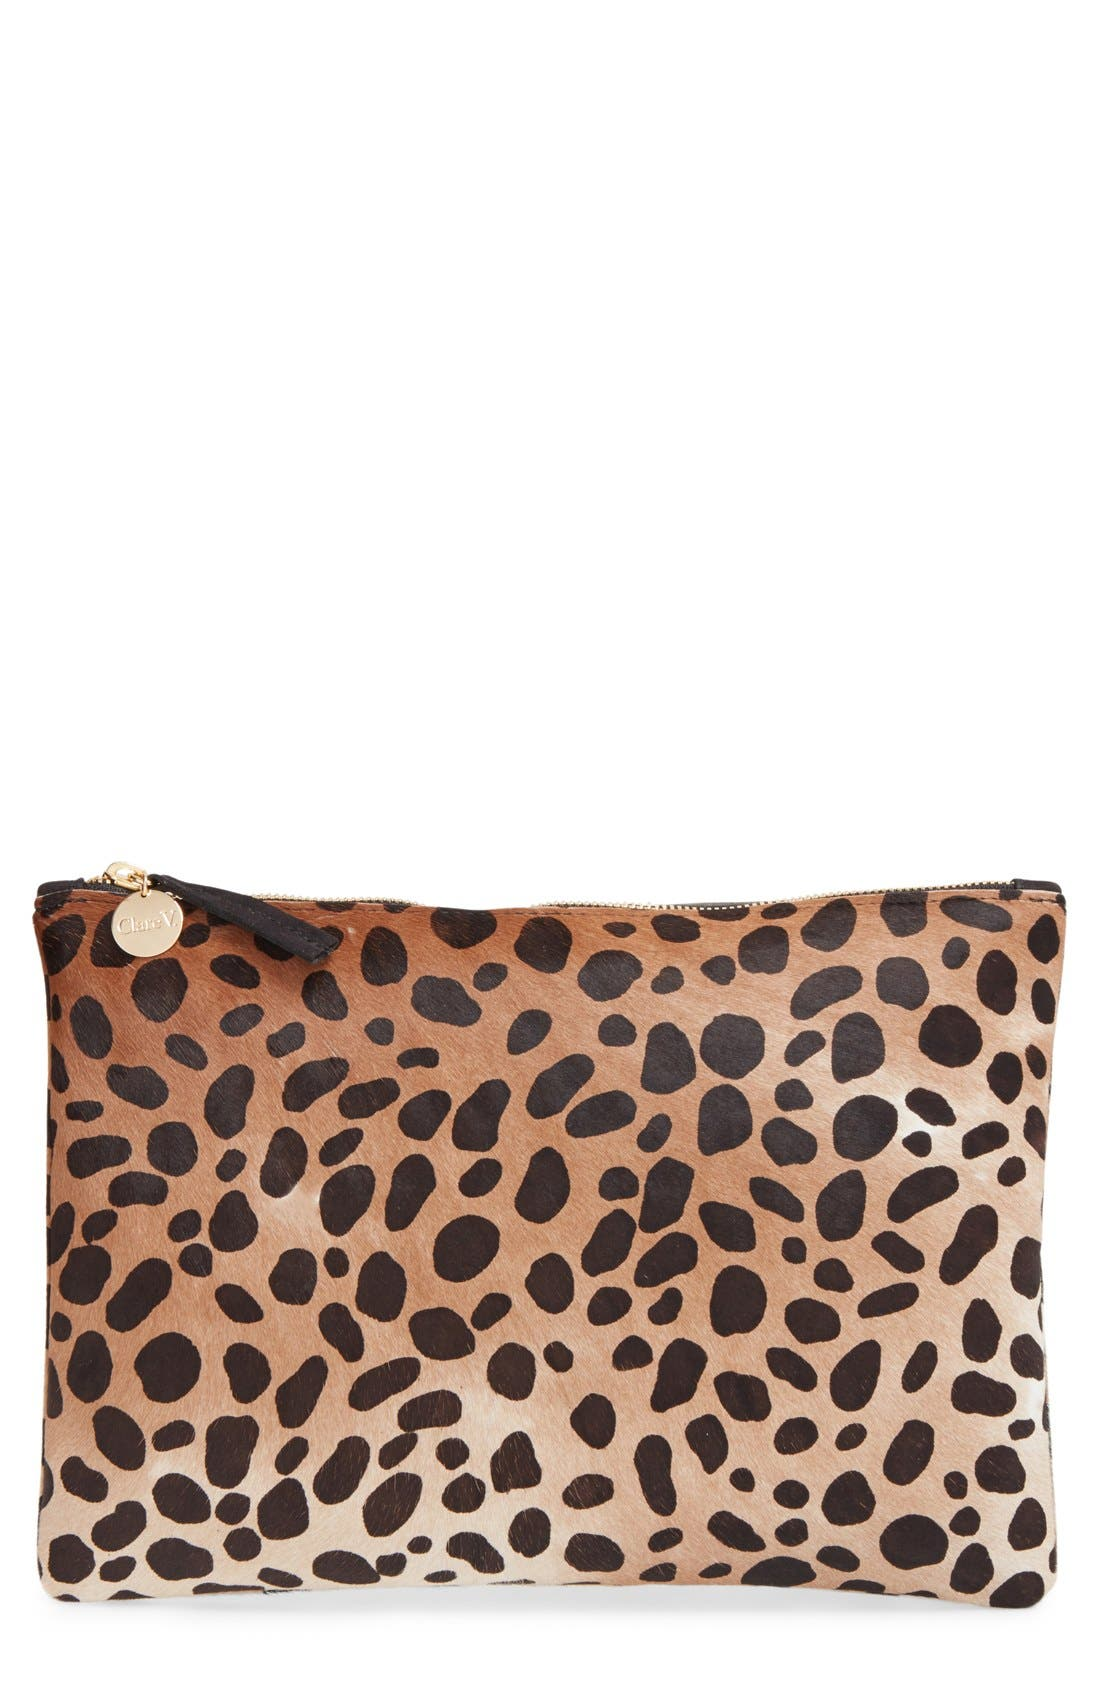 Alternate Image 1 Selected - Clare V. Genuine Calf Hair Leopard Print Zip Clutch